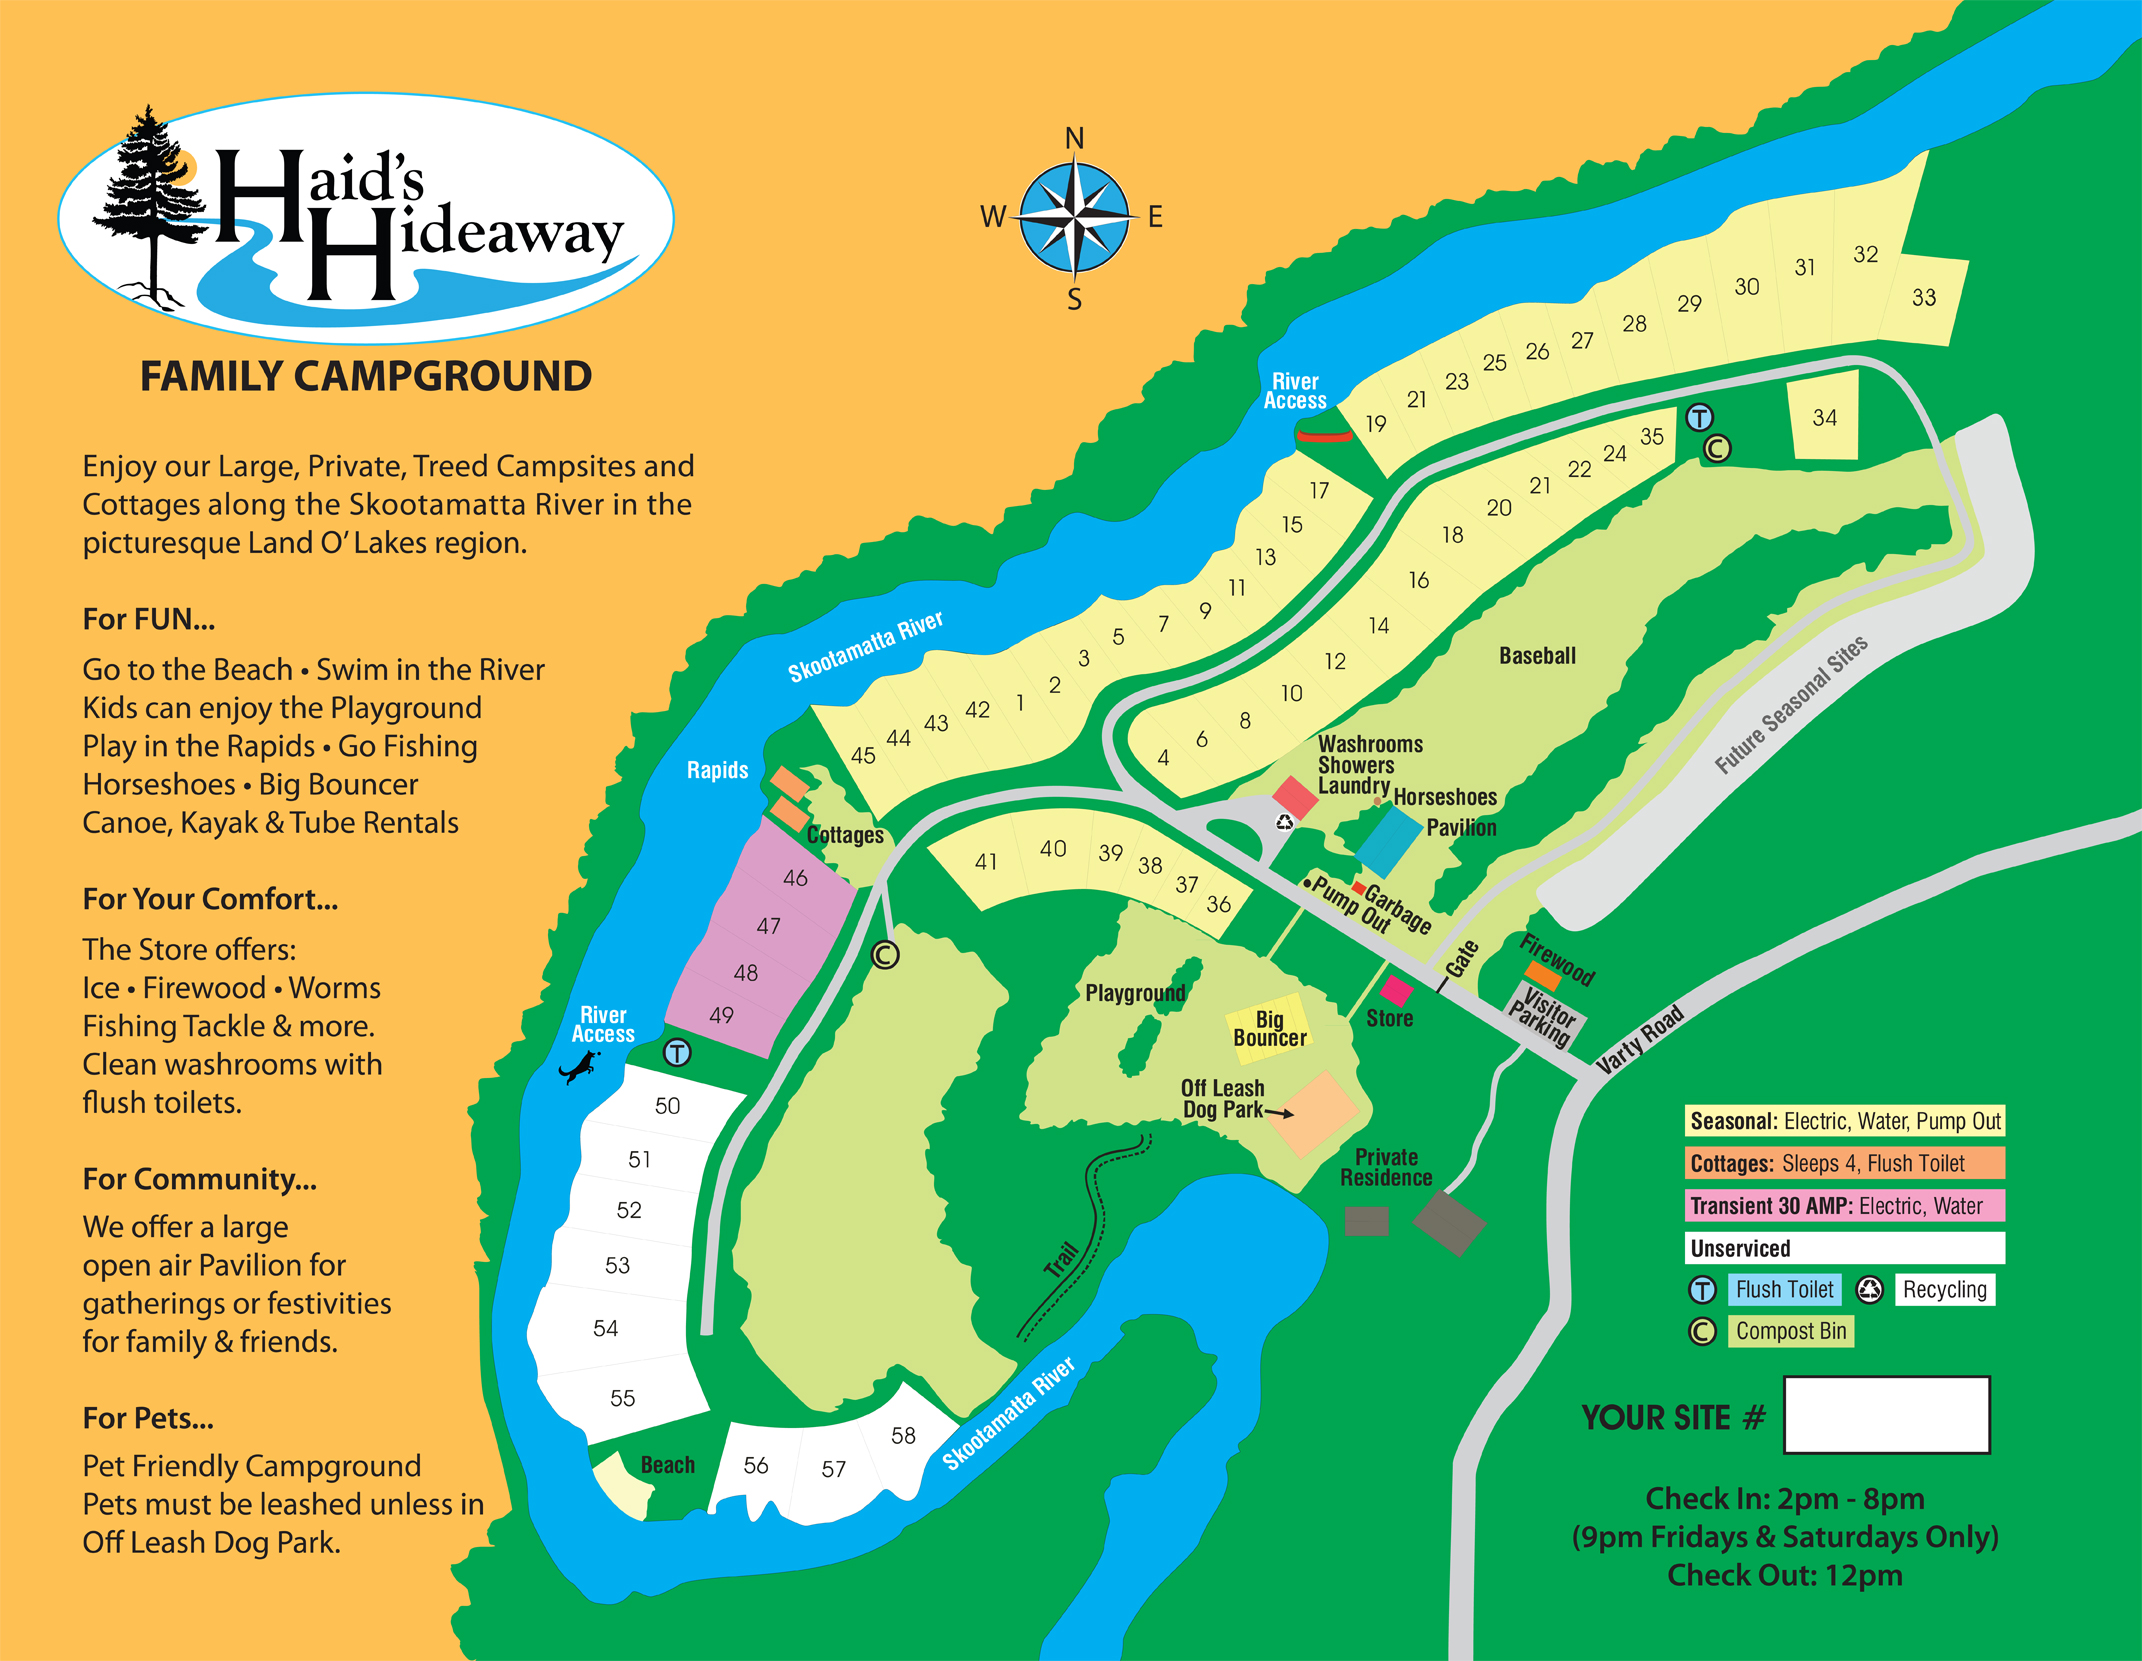 Haid's Hideaway Campground Map - March 24, 2021